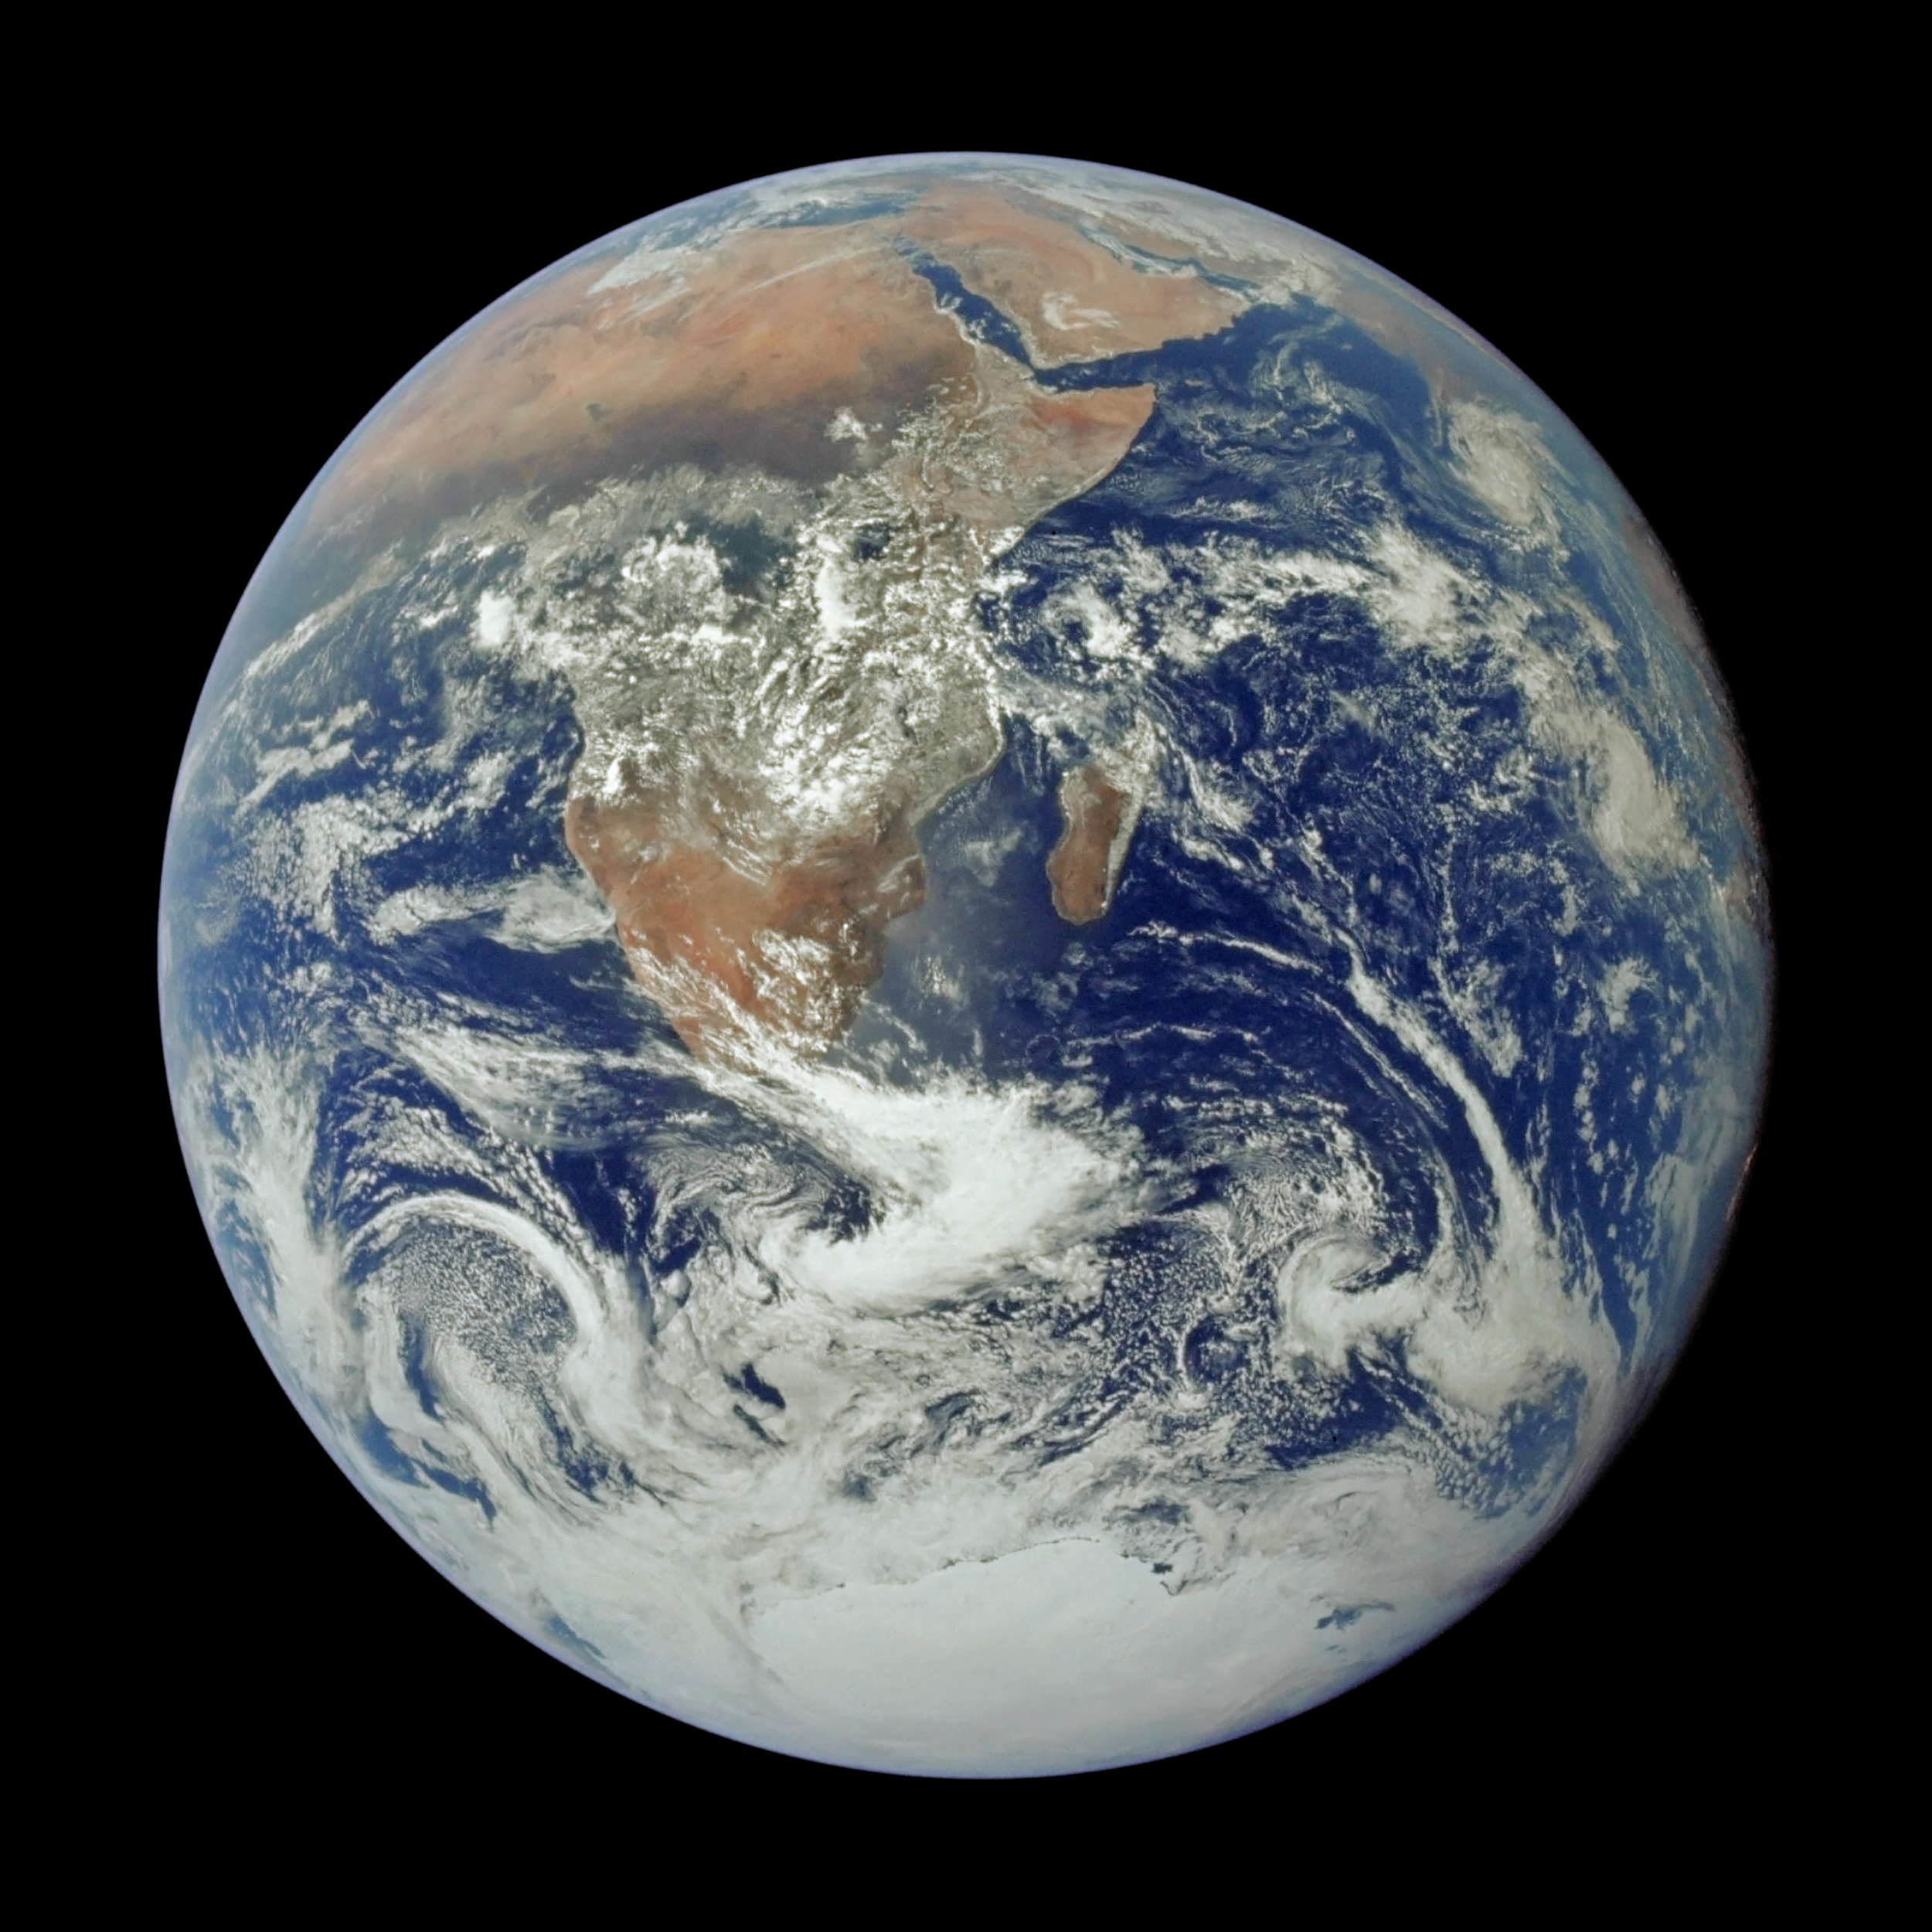 blue_marble_apollo_17_19721207.png